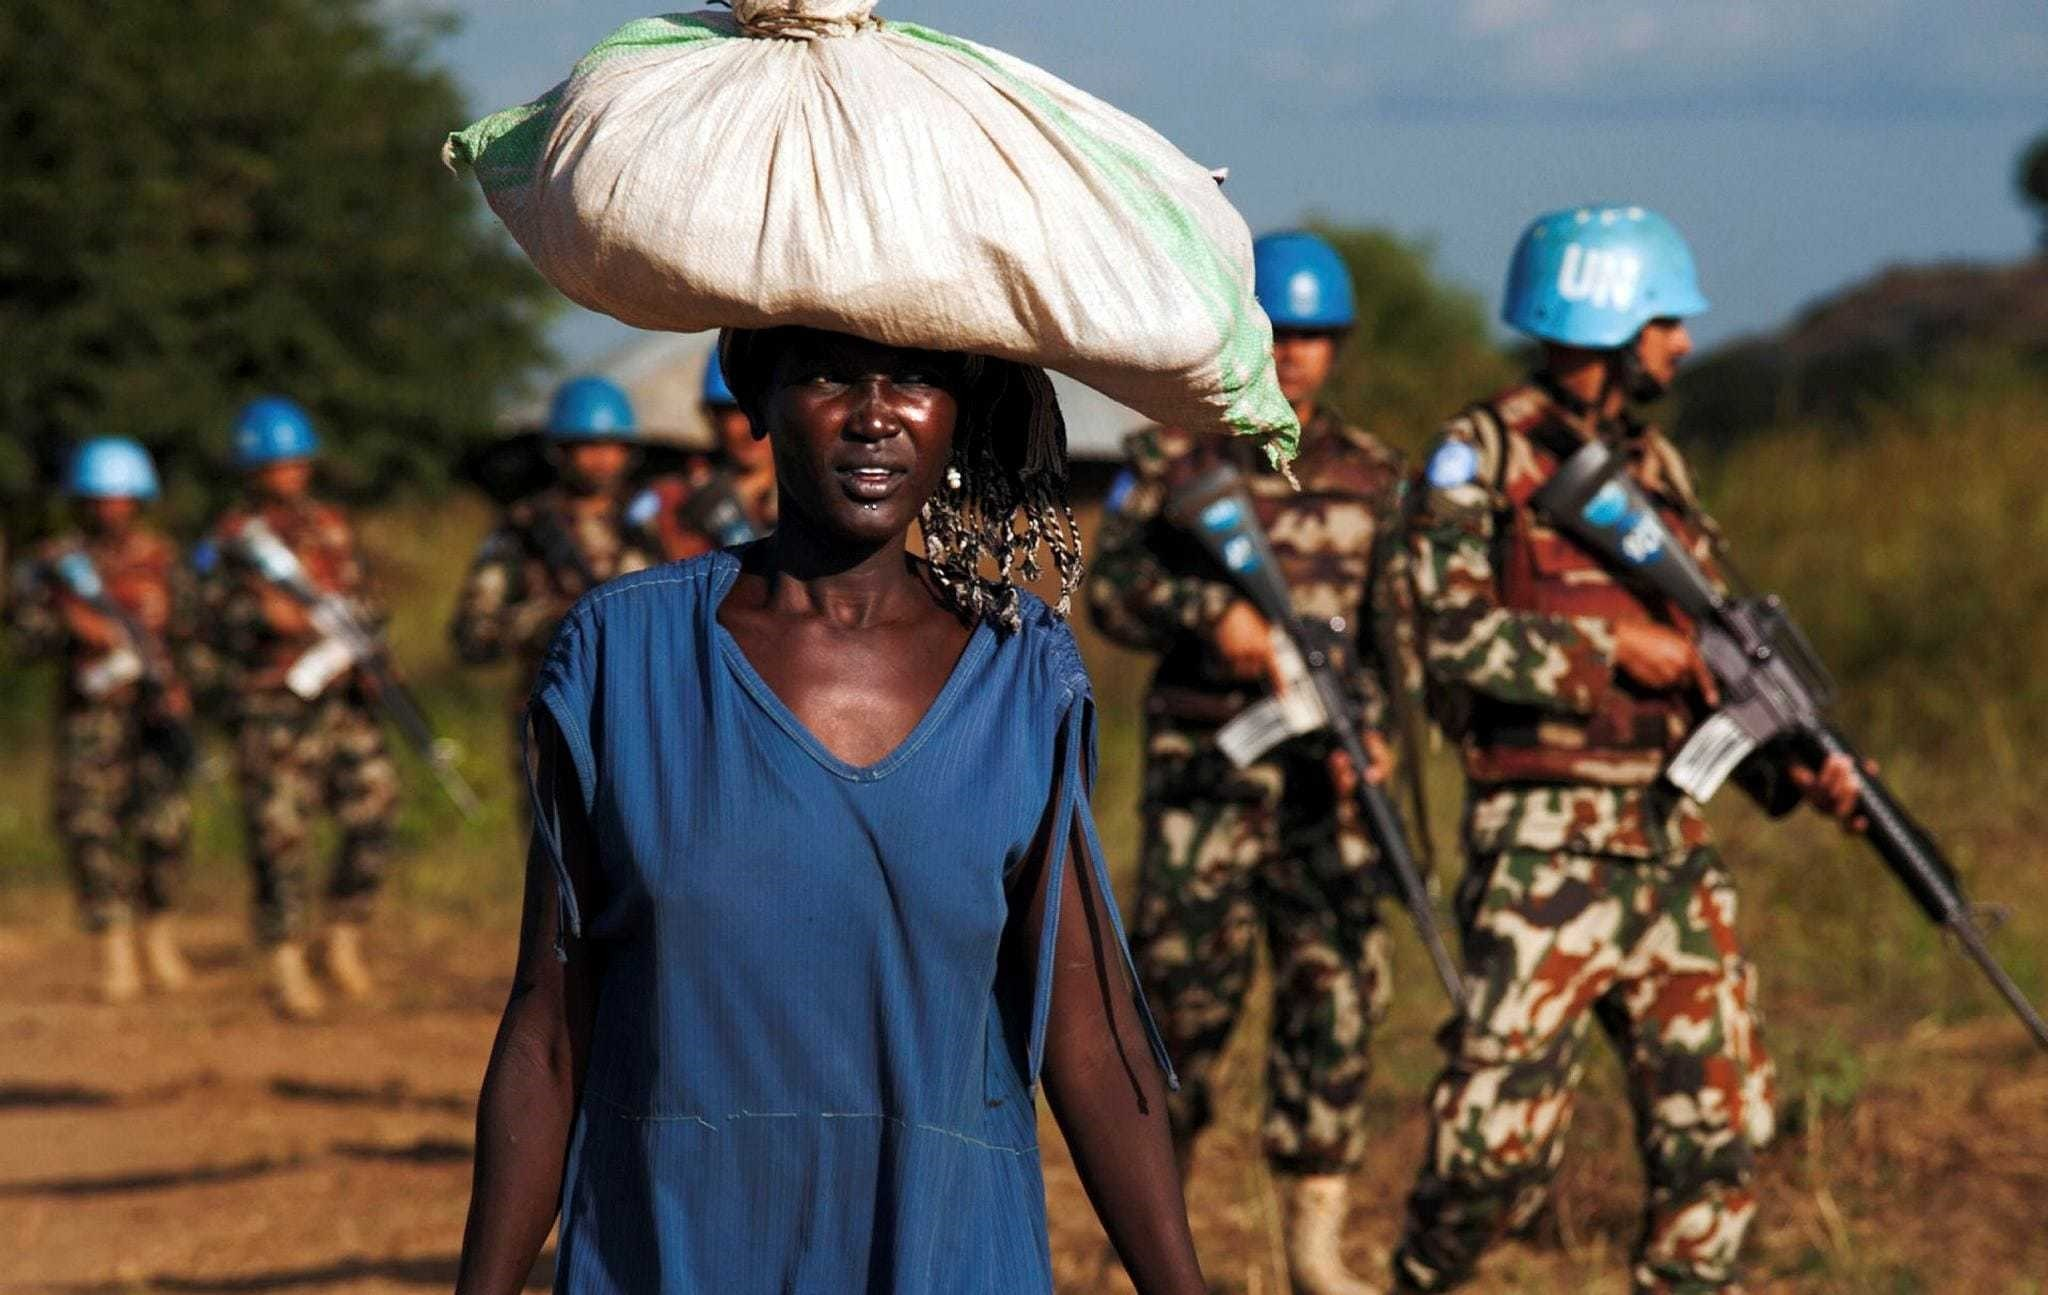 A displaced woman carrying goods as United Nations Mission in South Sudan (UNMISS) peacekeepers patrol outside the premises of the UN Protection of Civilians (PoC) site in Juba.